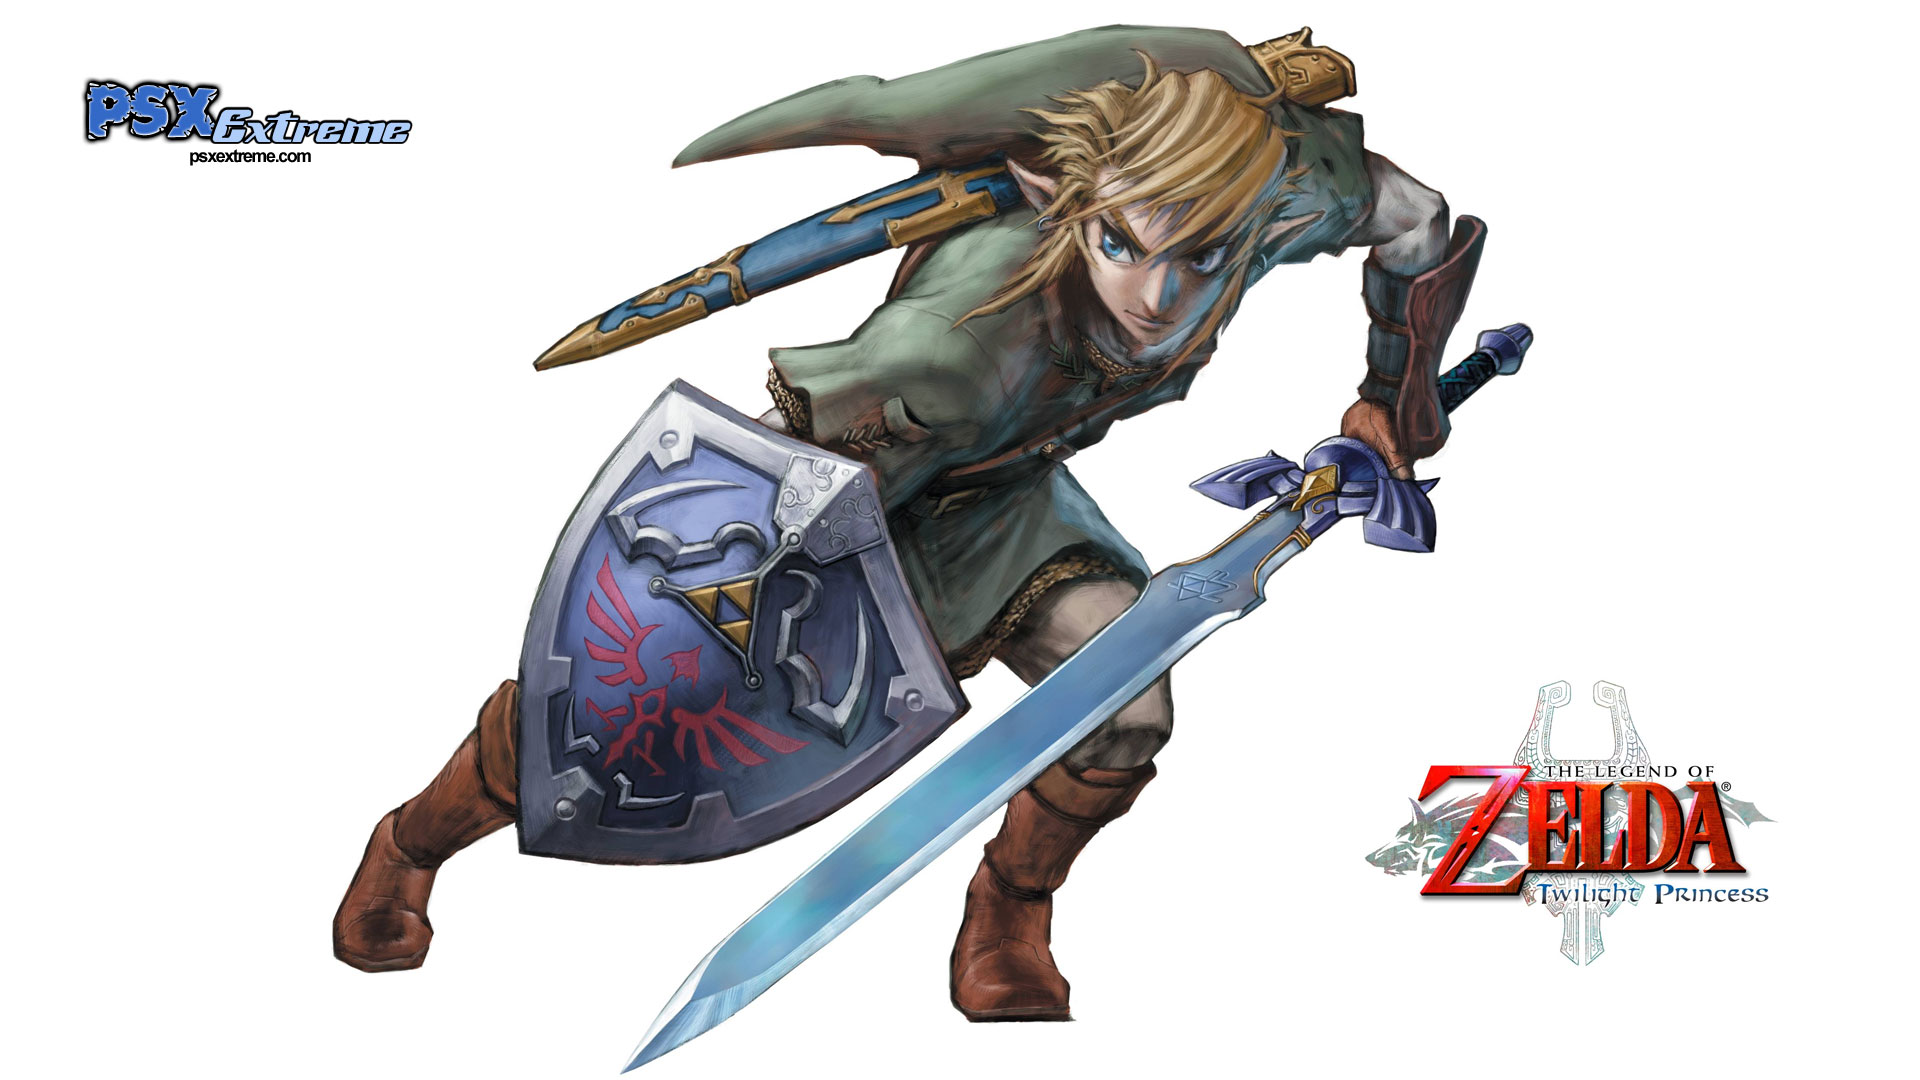 Zelda Twilight Princess Wallpaper 1920x1080